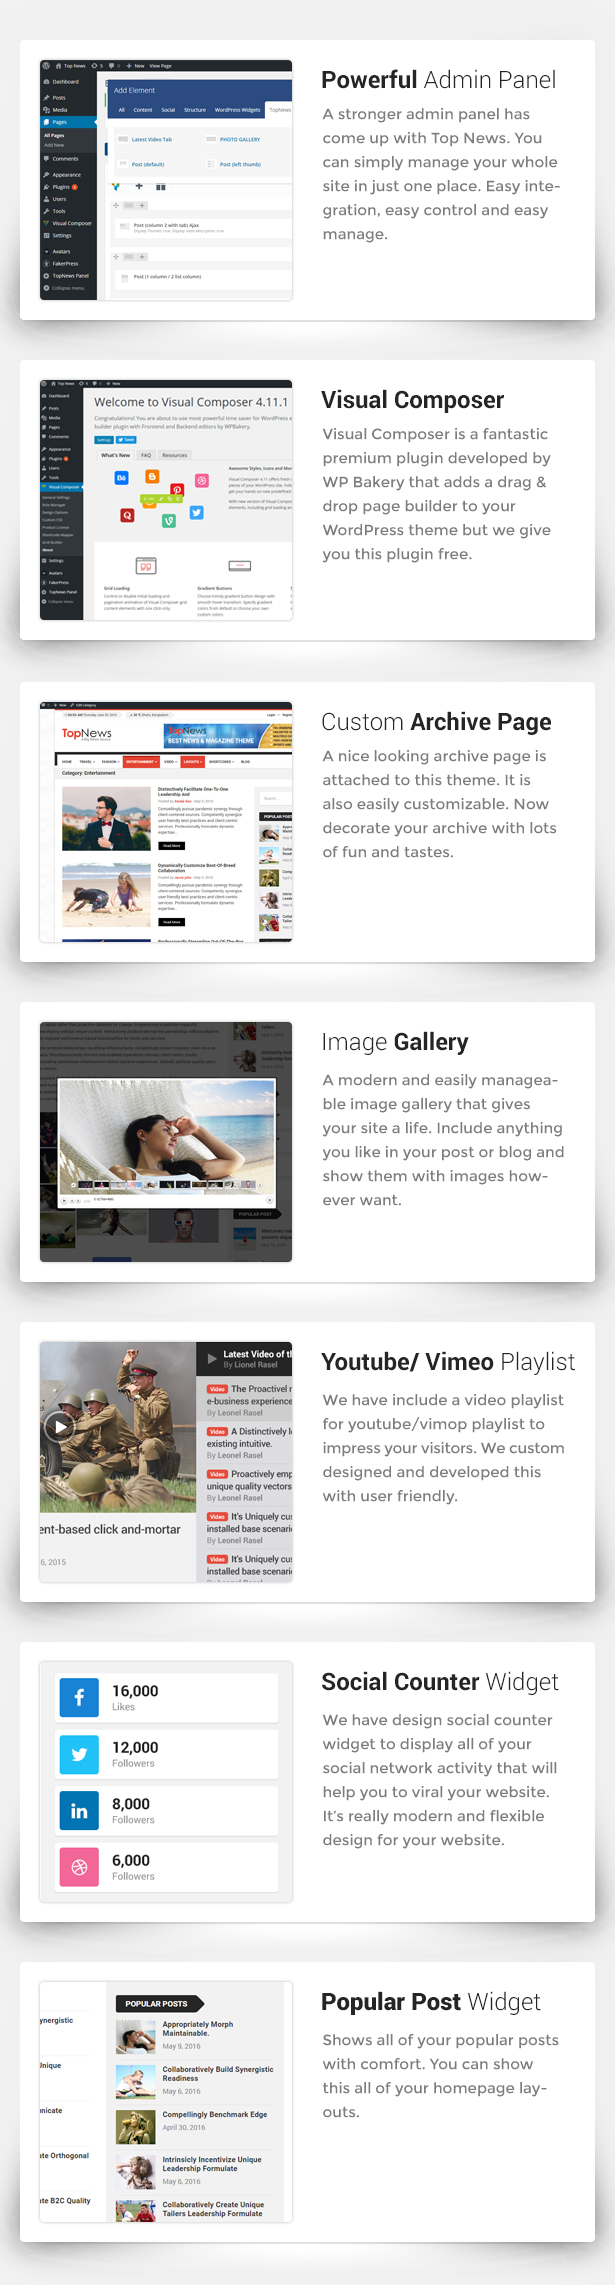 TopNews - News Magazine Newspaper and Blog WordPress Theme